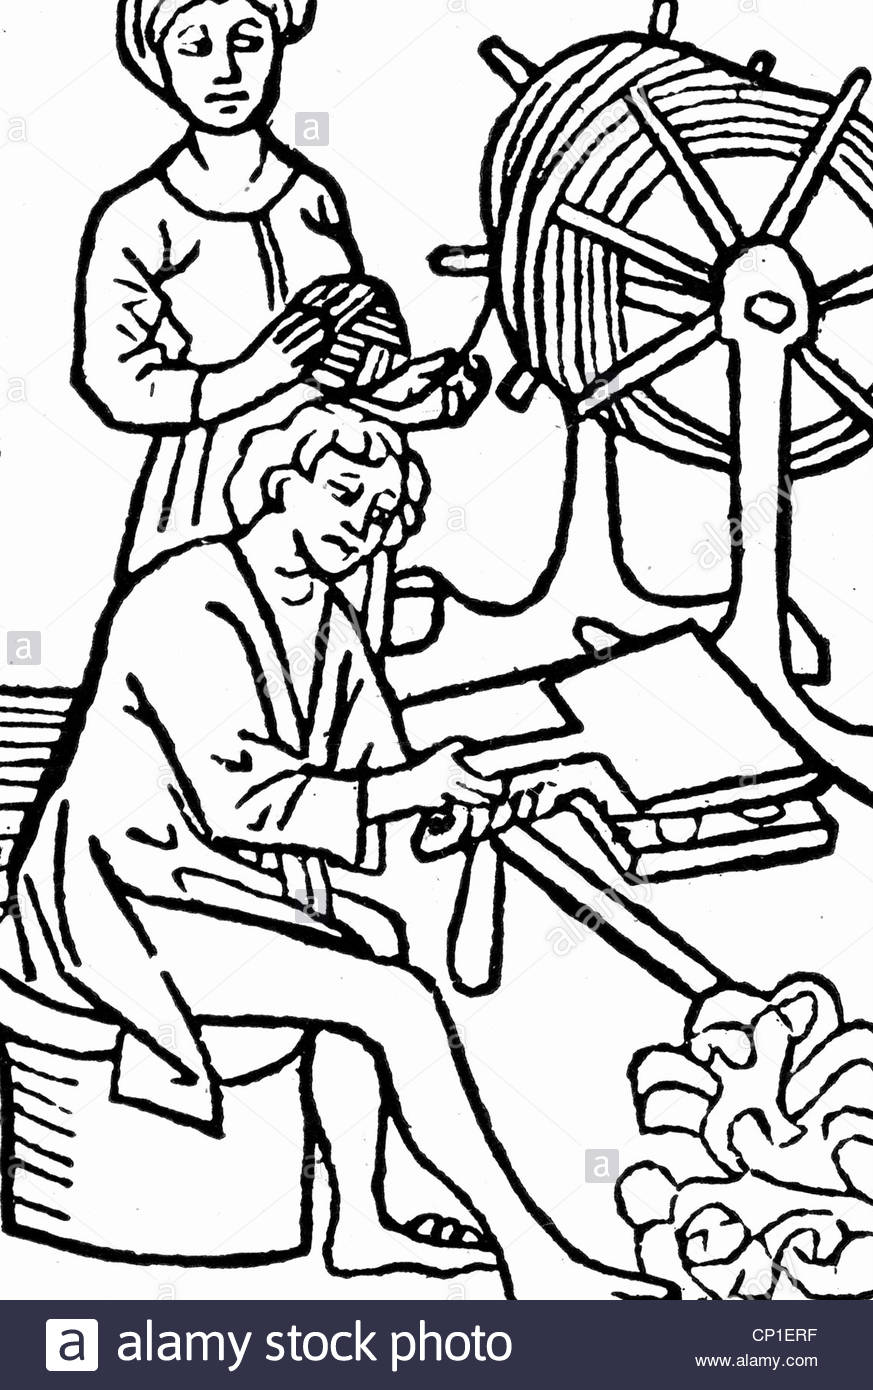 873x1390 People, Professions, Spinner, Yarn Making, Woodcut, 1479, Spinners